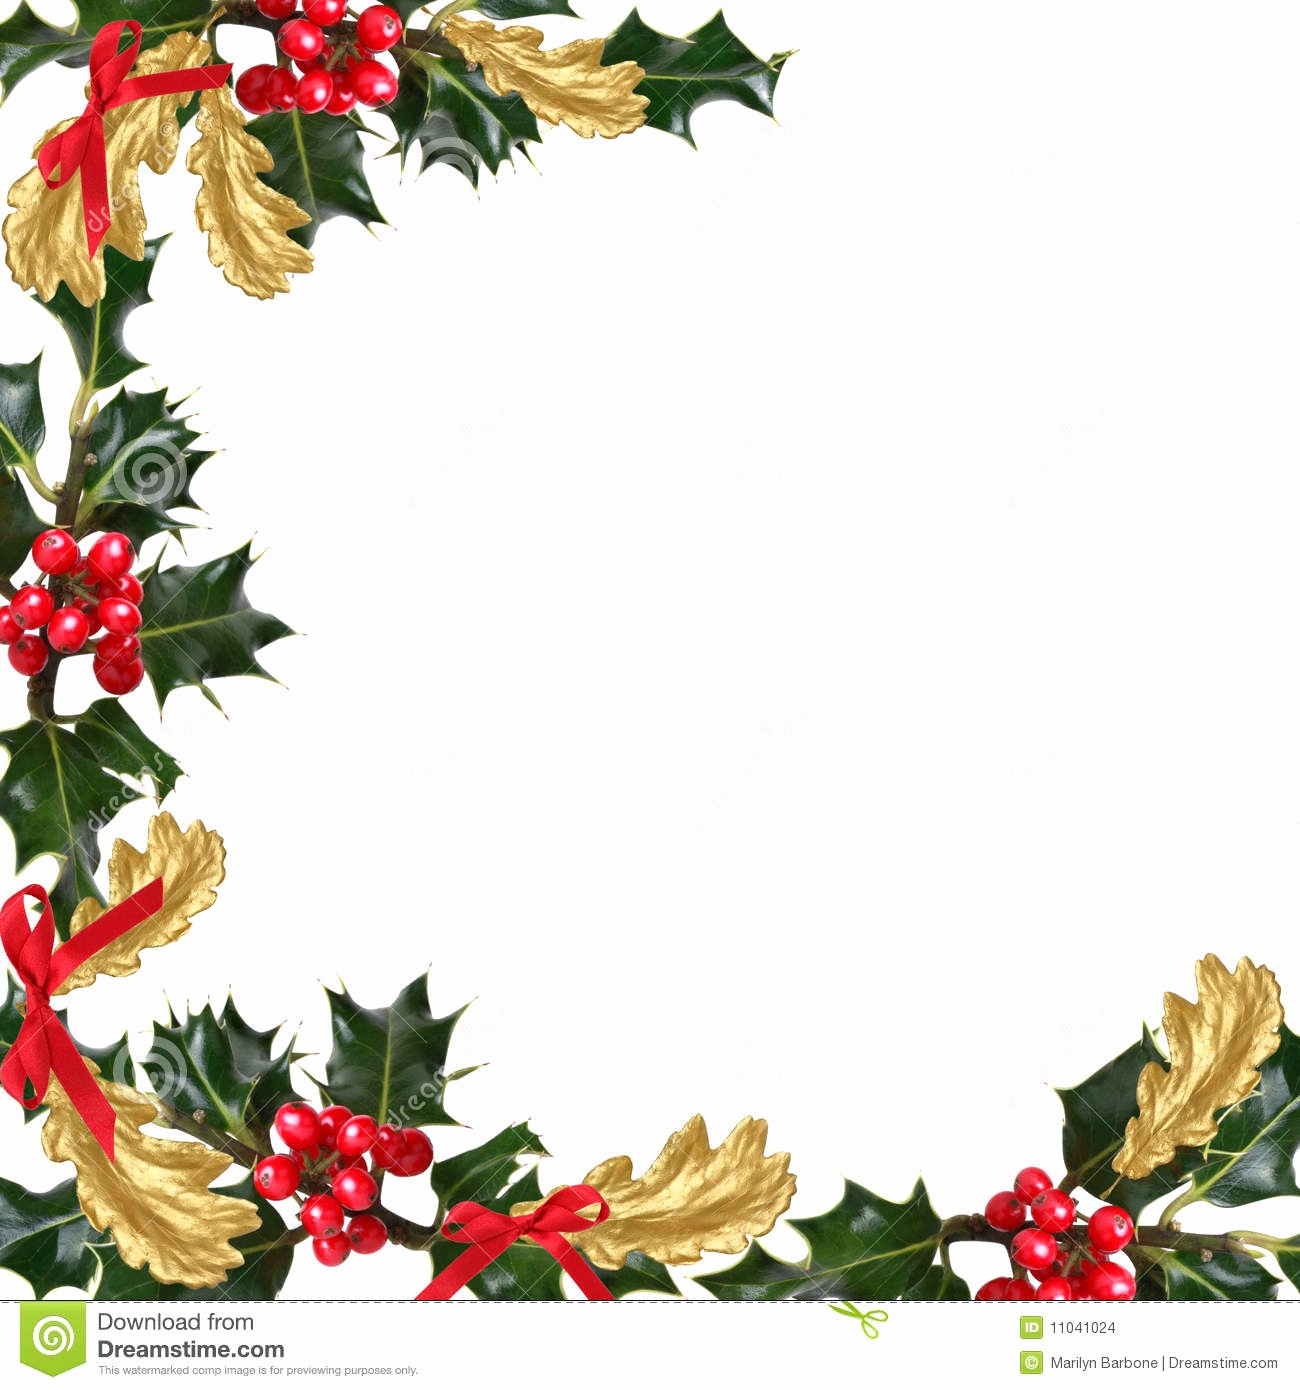 Festive Borders for Word Document Fresh Christmas Festive Border Stock Image